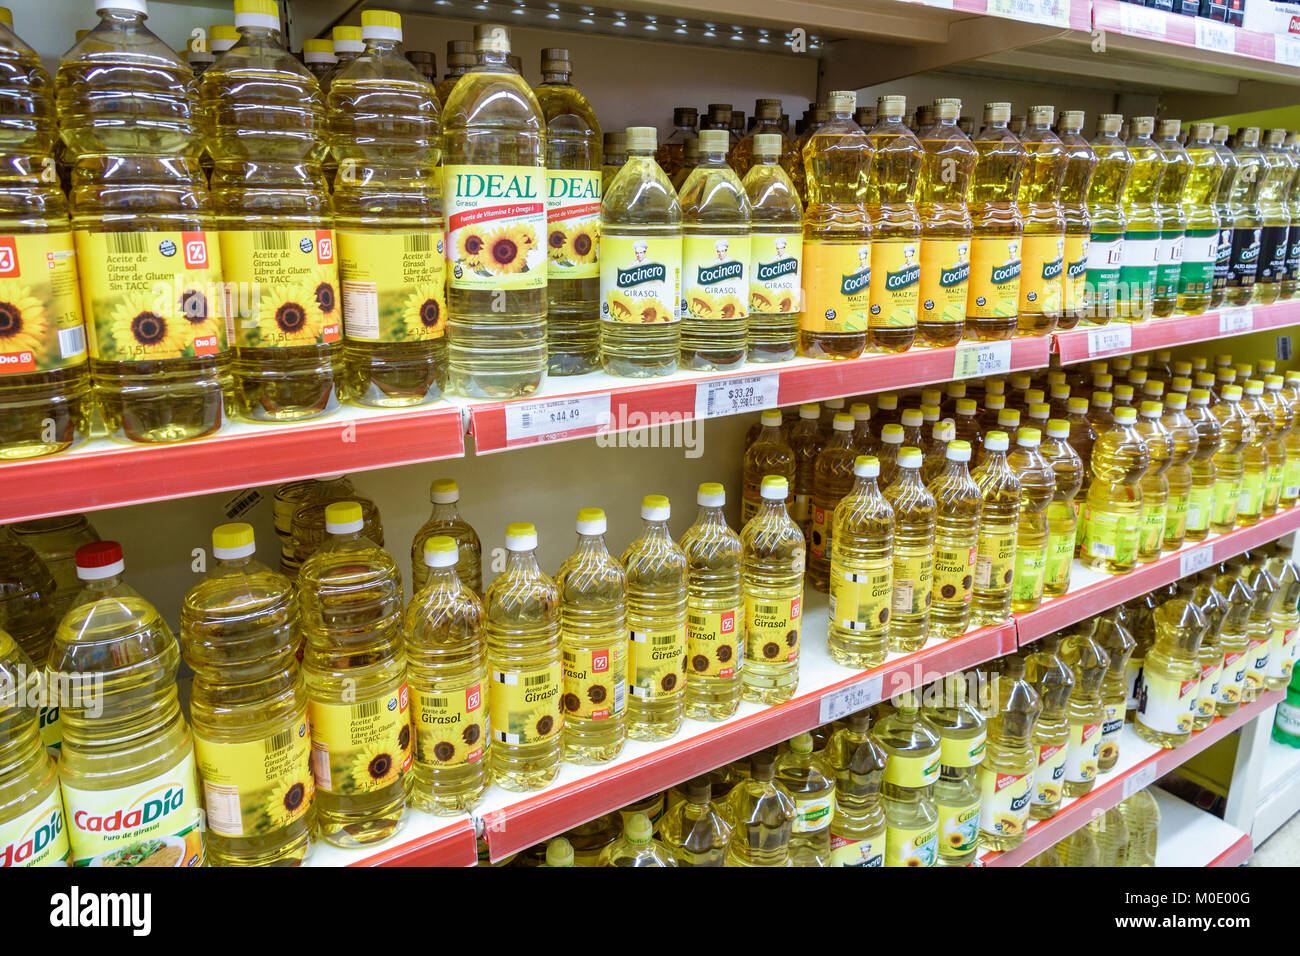 Buenos Aires Argentina San Telmo shopping interior grocery store supermarket food sunflower oil bottle shelf Hispanic - Stock Image